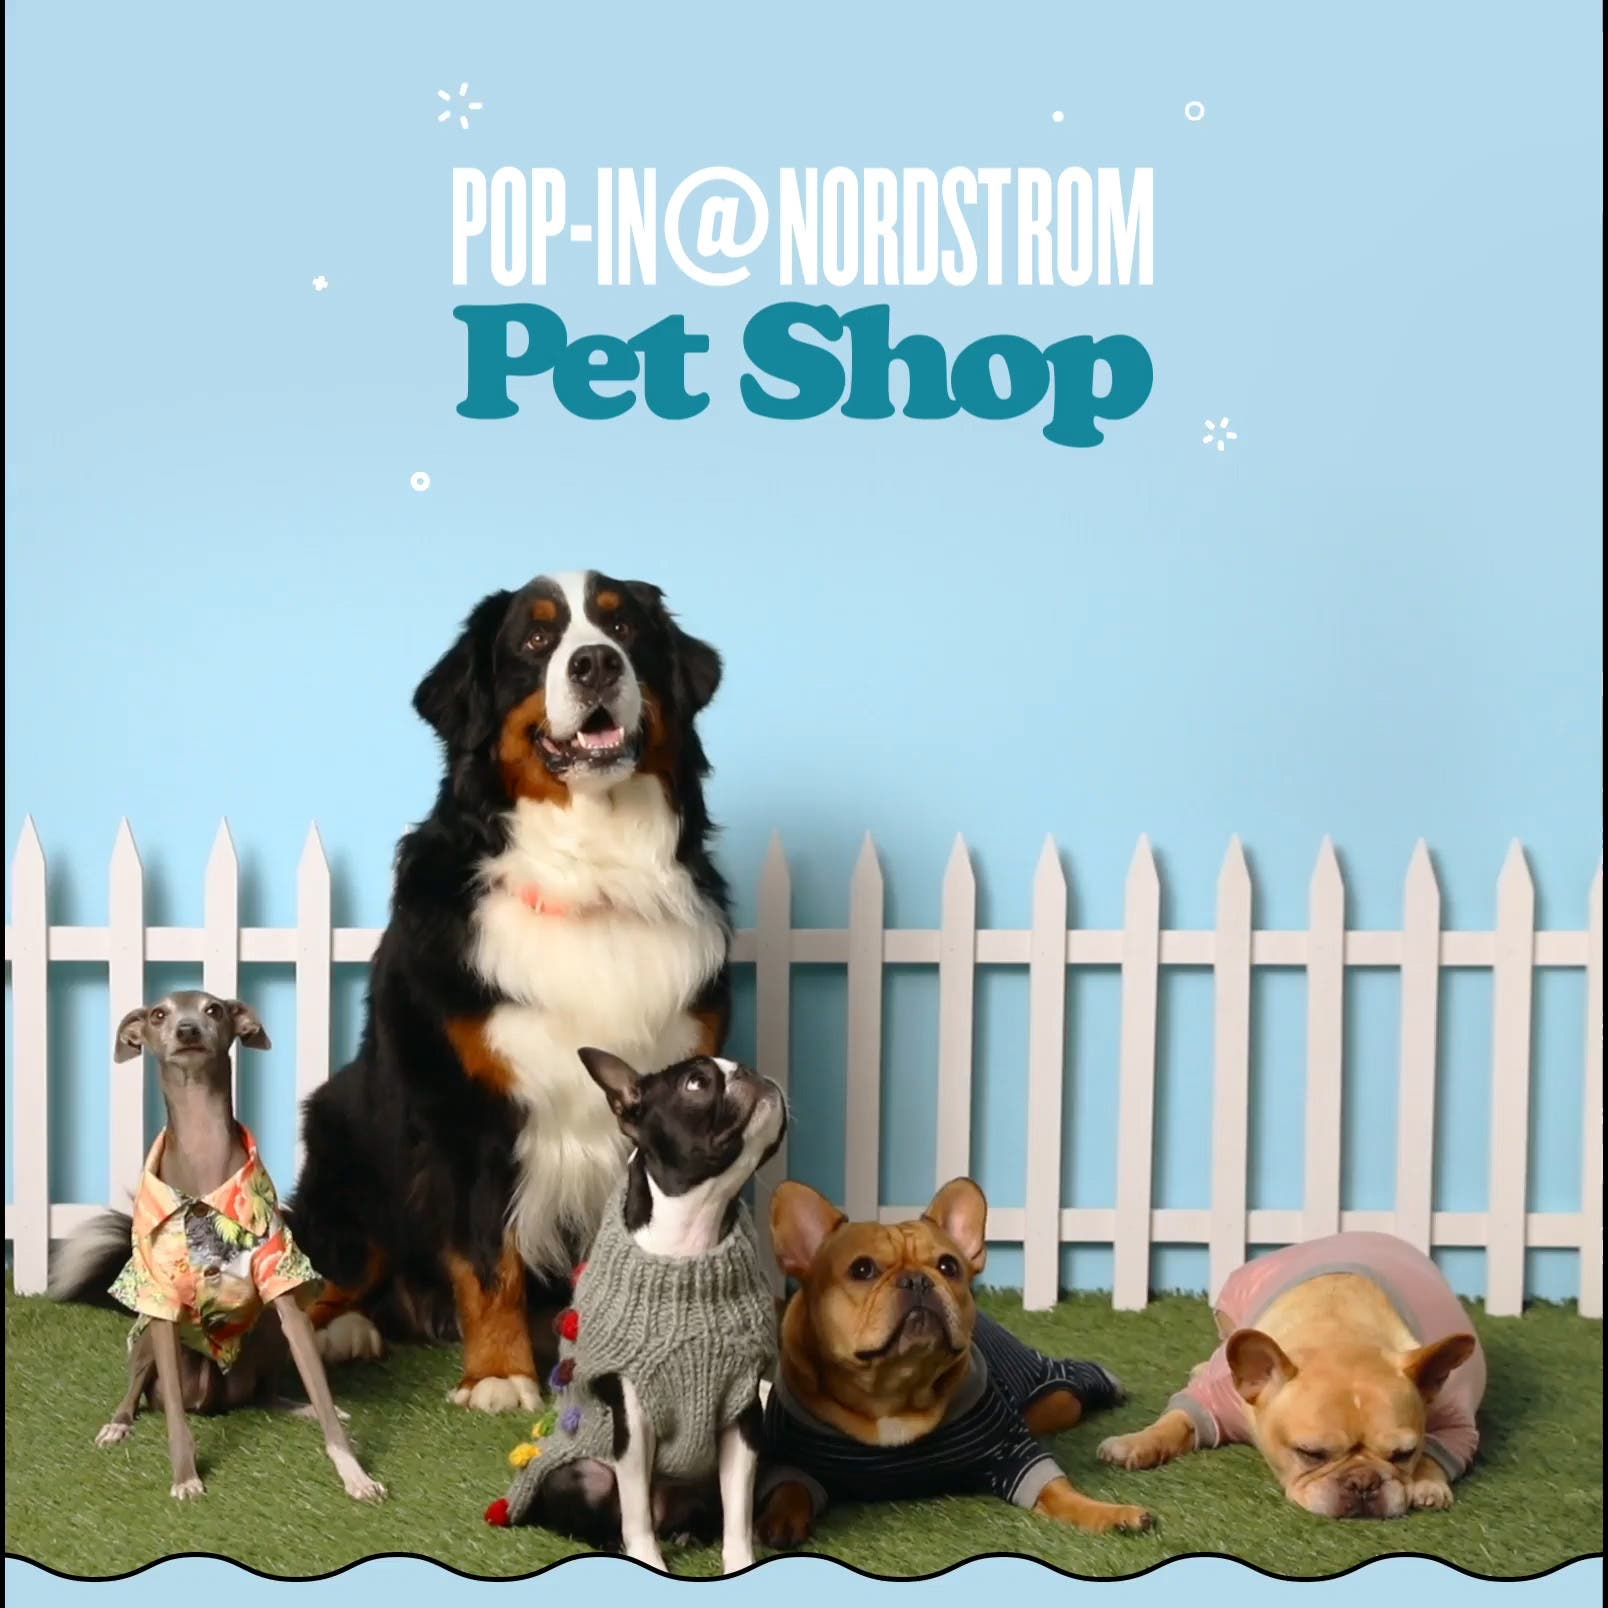 Pop-In@Nordstrom Pet Shop, February 14 to April 5.